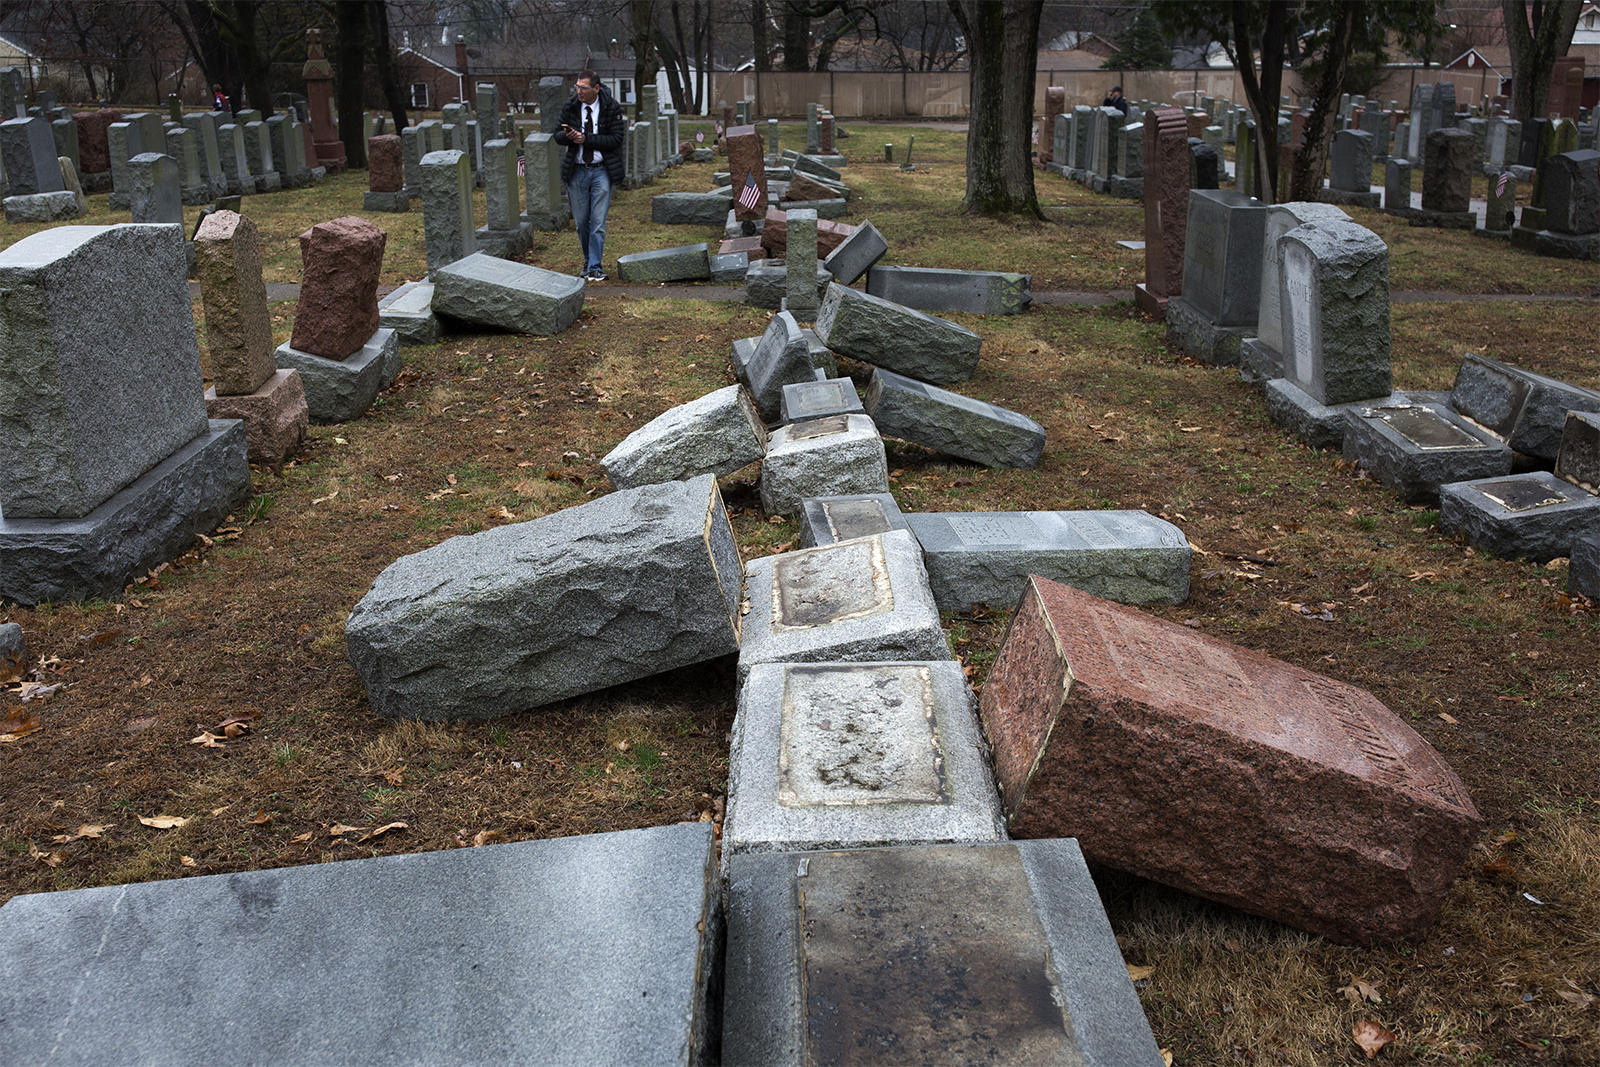 Muslim Americans fundraise to help fix  vandalised Jewish cemetery